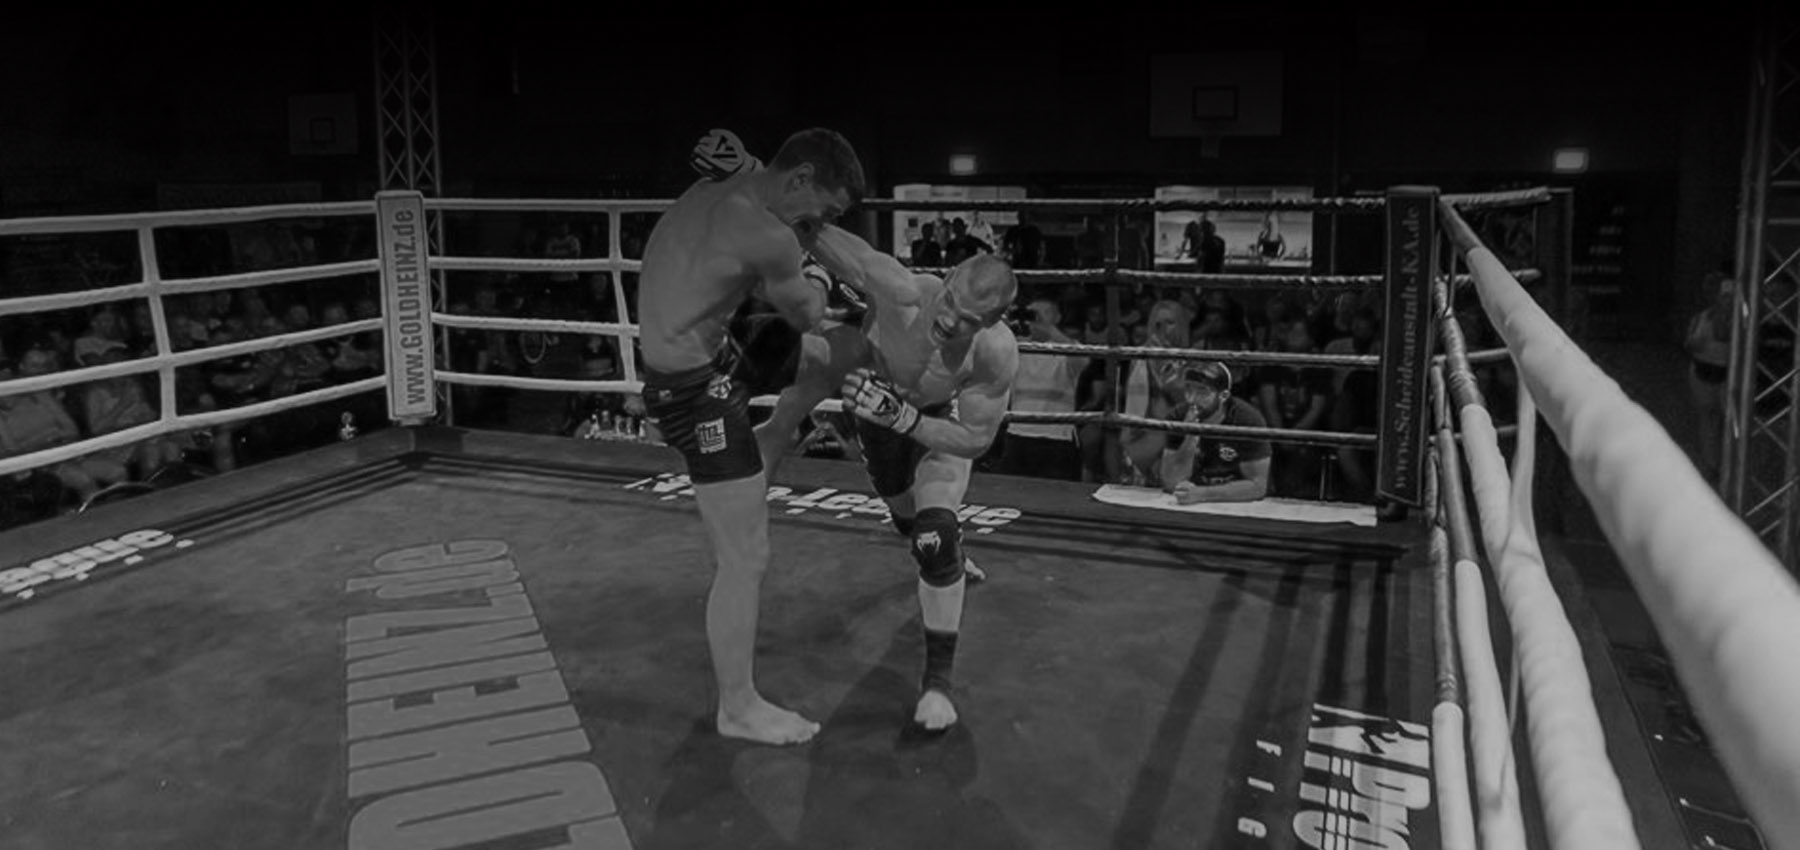 Pro-League Fightnight